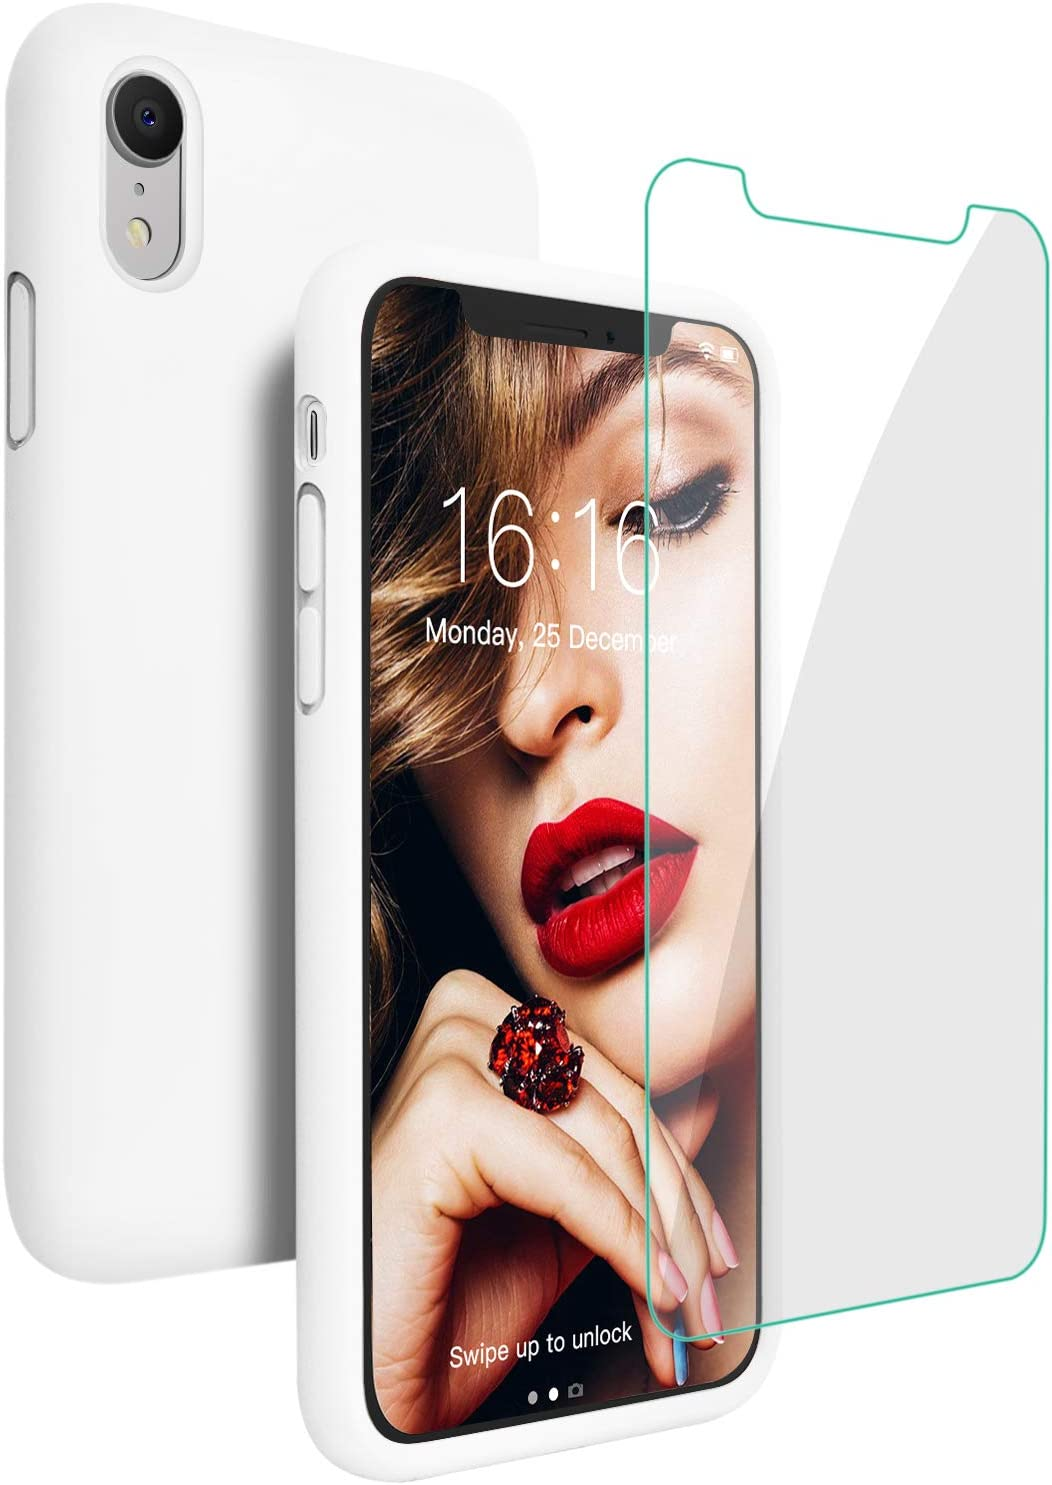 JASBON Case for iPhone XR, Soft Liquid Silicone iPhone XR Case with Tempered Glass Cover for iPhone XR-White